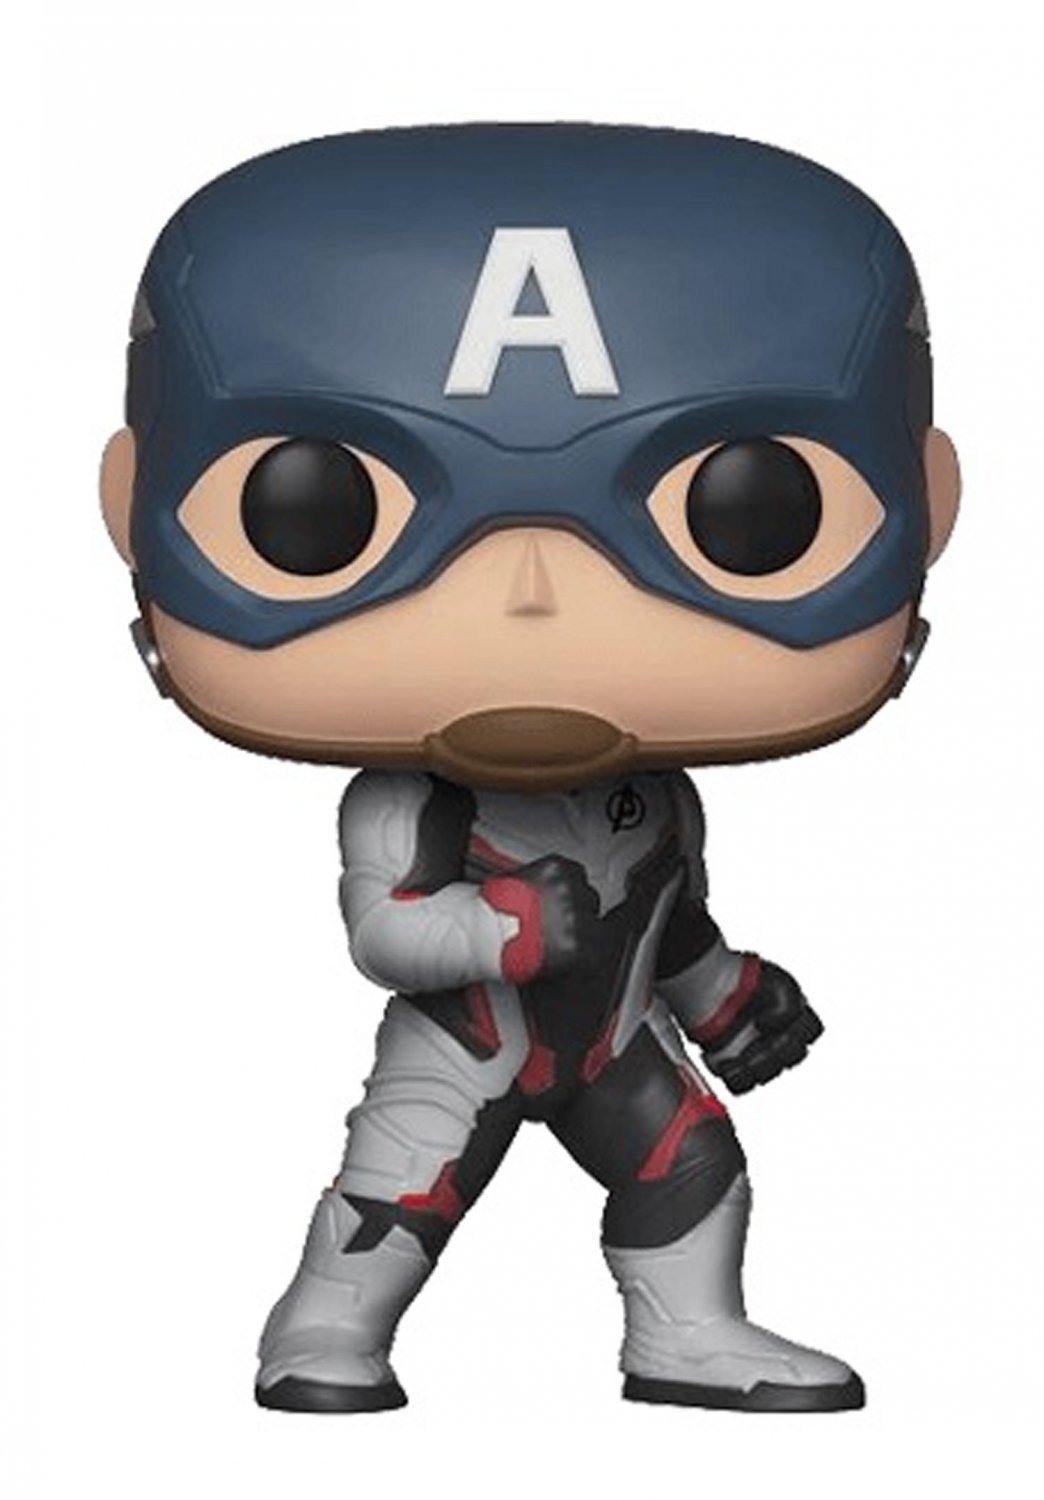 "Funko Pop Marvel Avengers #450 - Captain America Vinyl Figure (damaged box) 4"" H / 10 cm H"